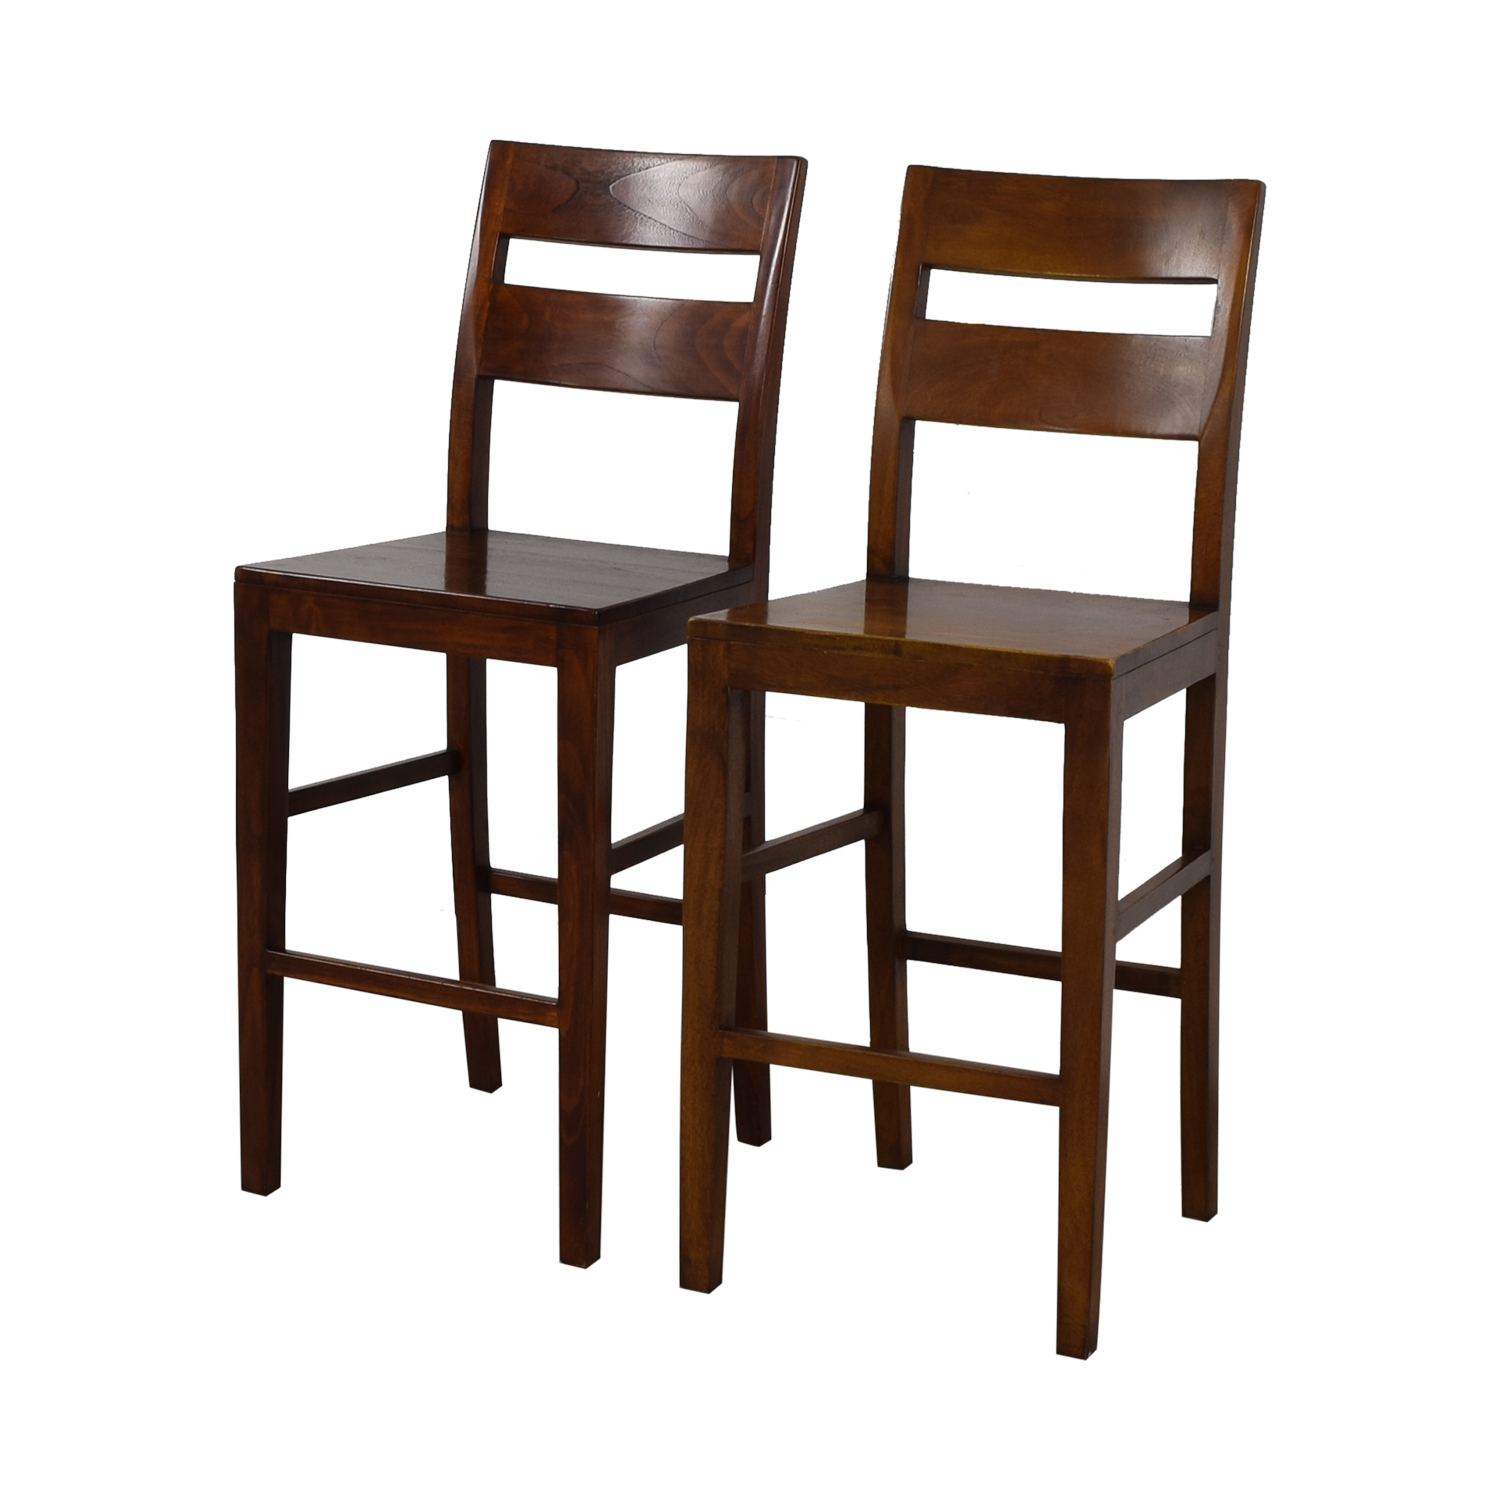 buy Crate & Barrel Counter Breakfast Bar Stools Crate & Barrel Stools